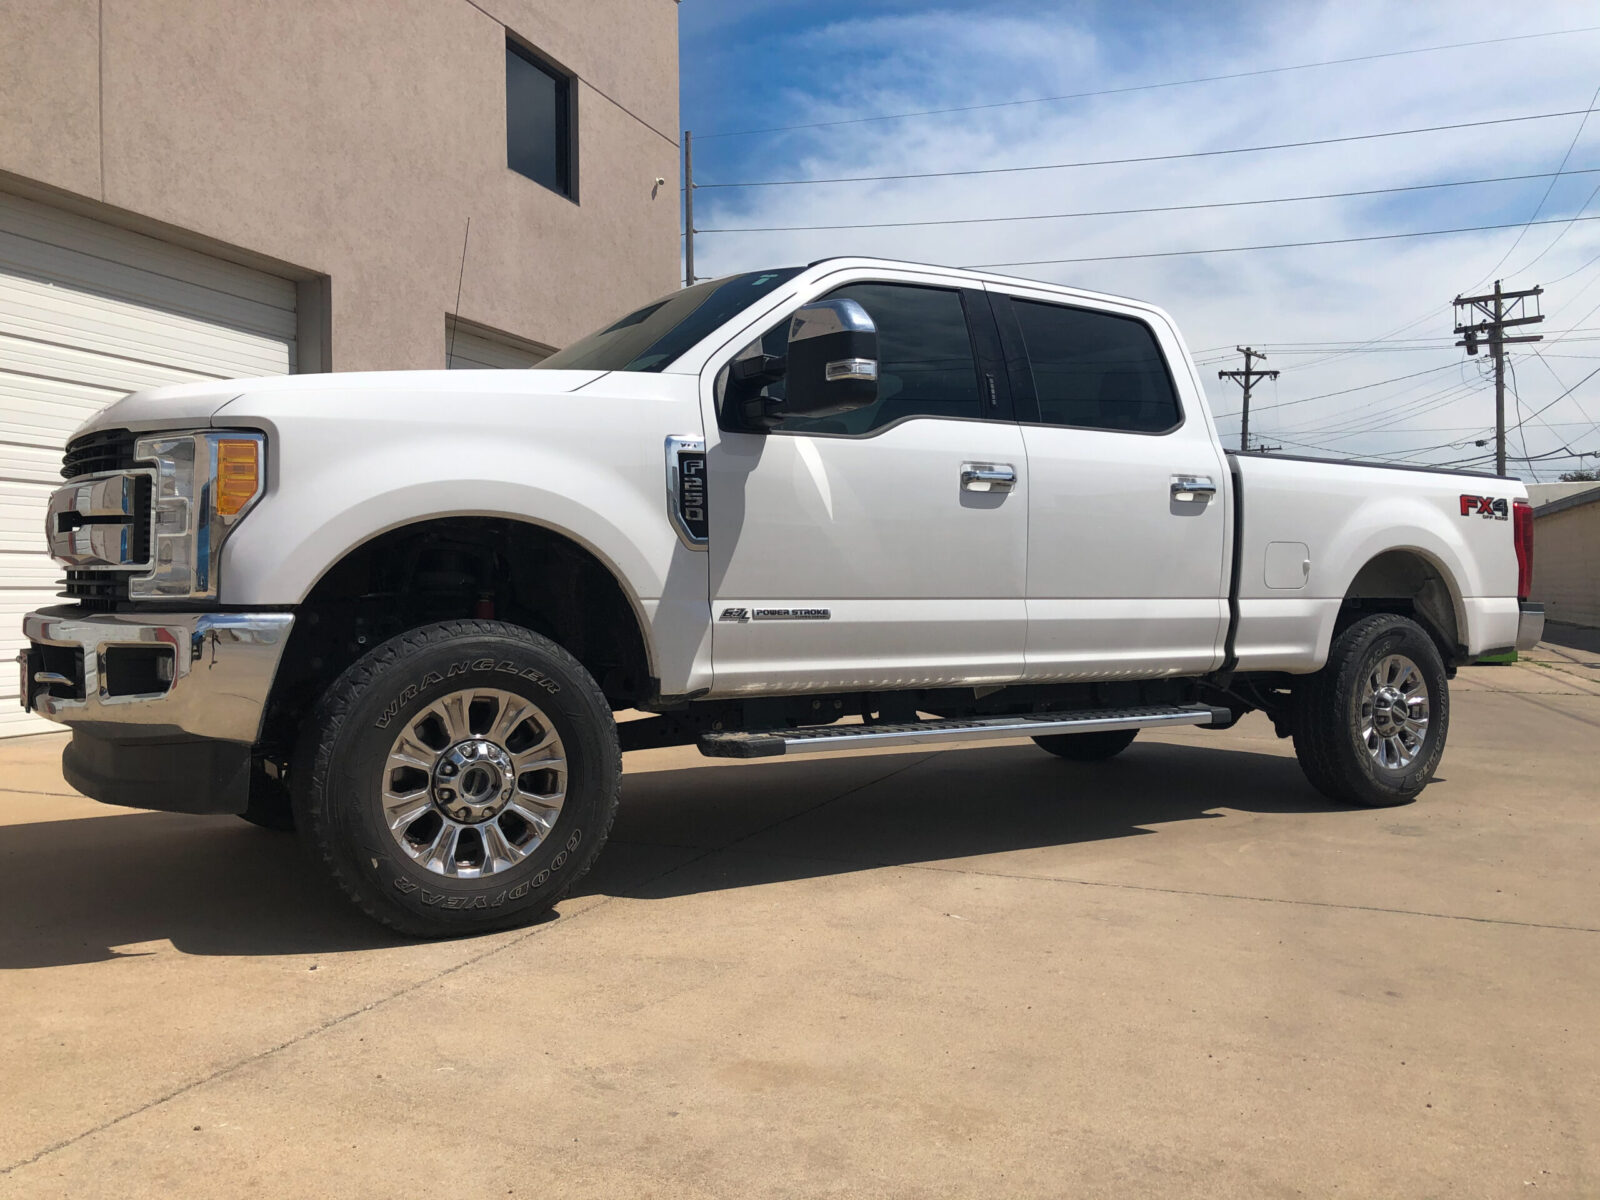 White truck parked outside on concrete pavement, sideview